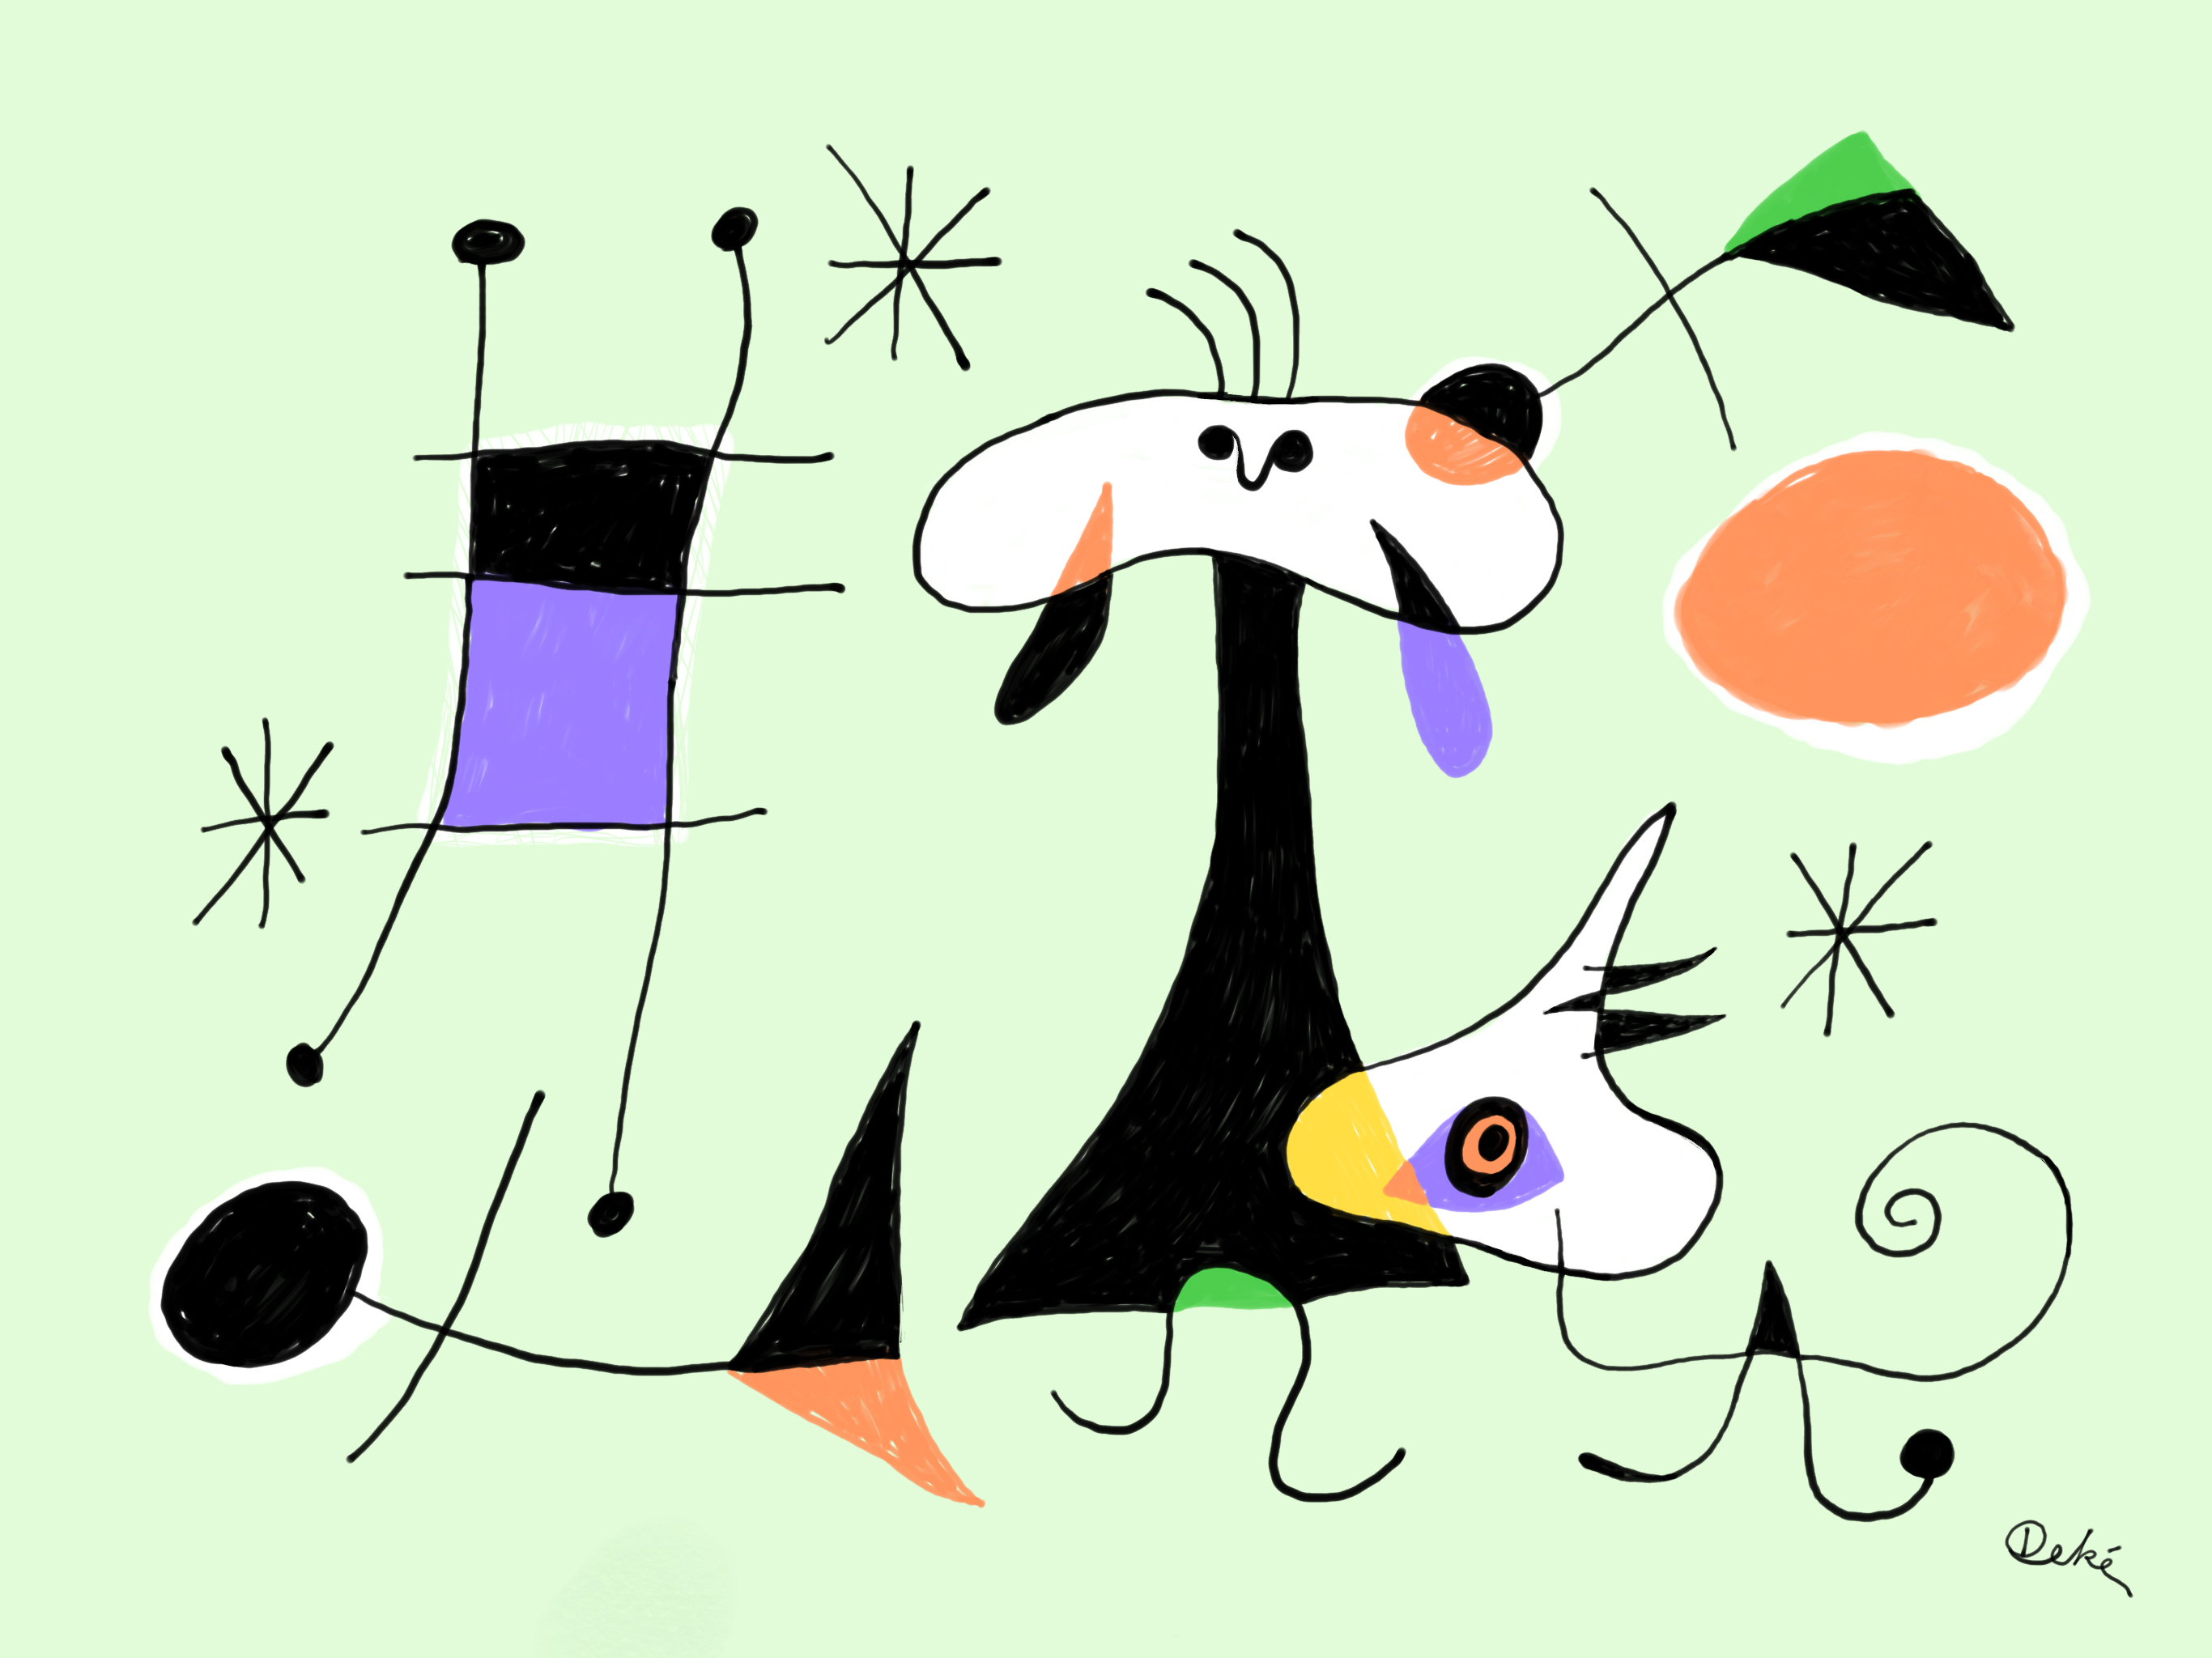 Deke's interpretation of Miro's